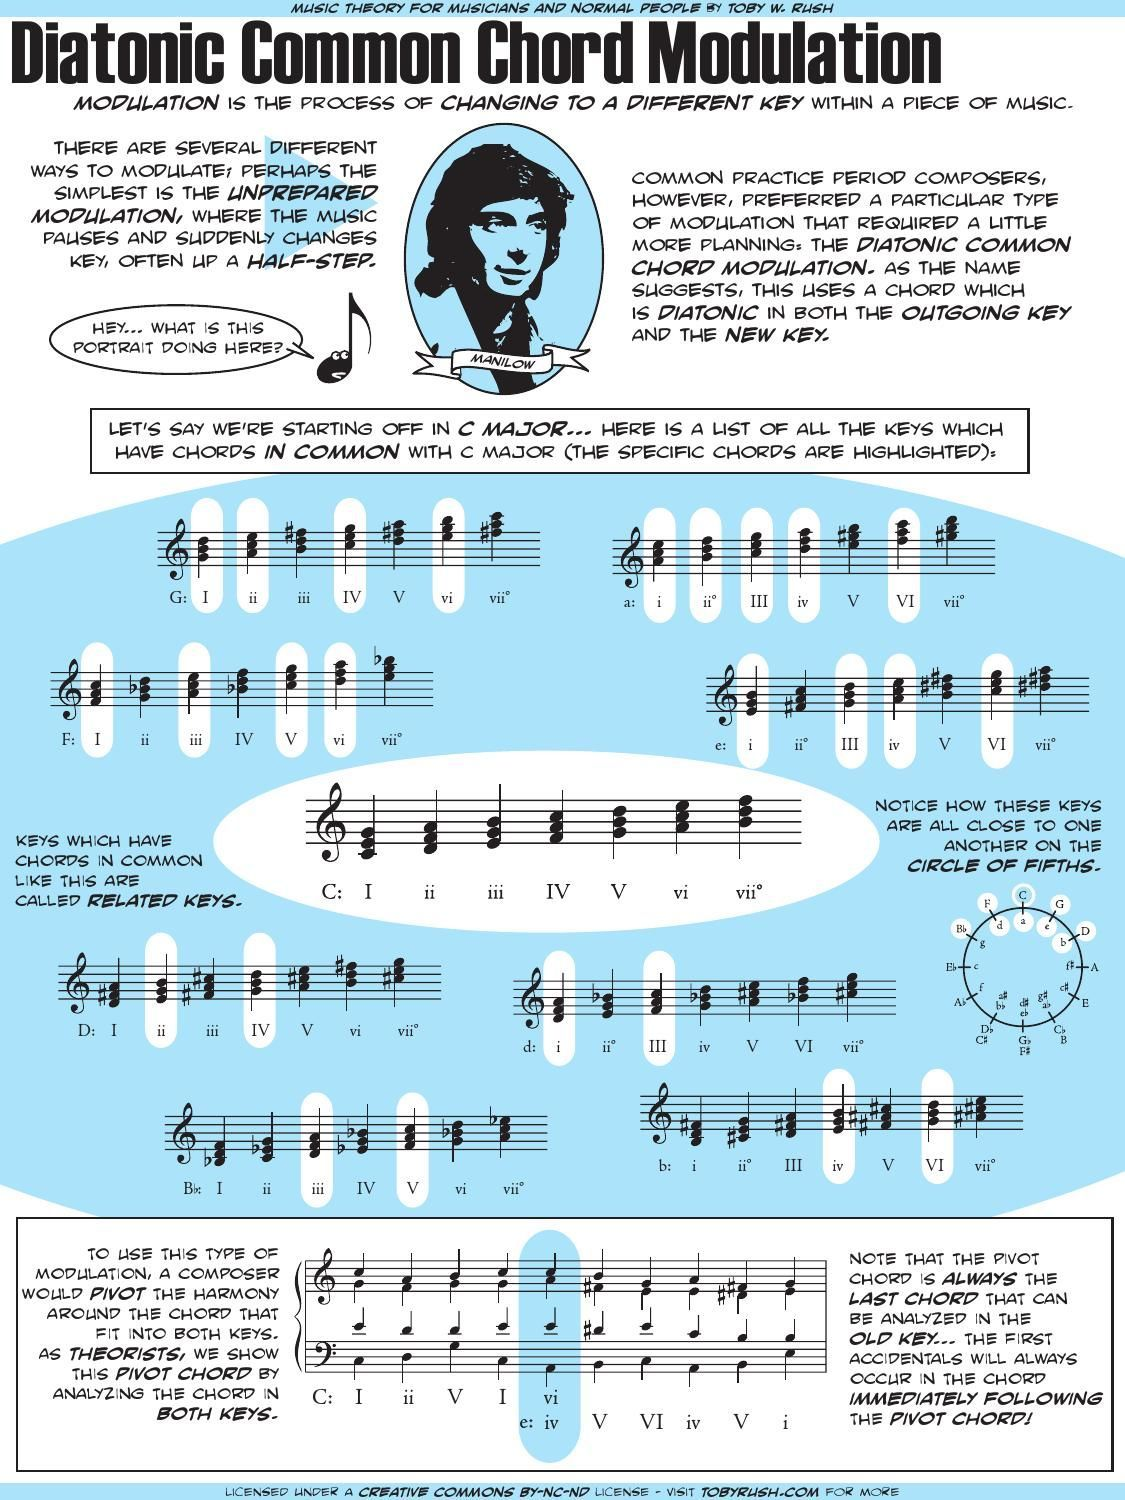 A Description Of Diatonic Common Chord Modulation And Its